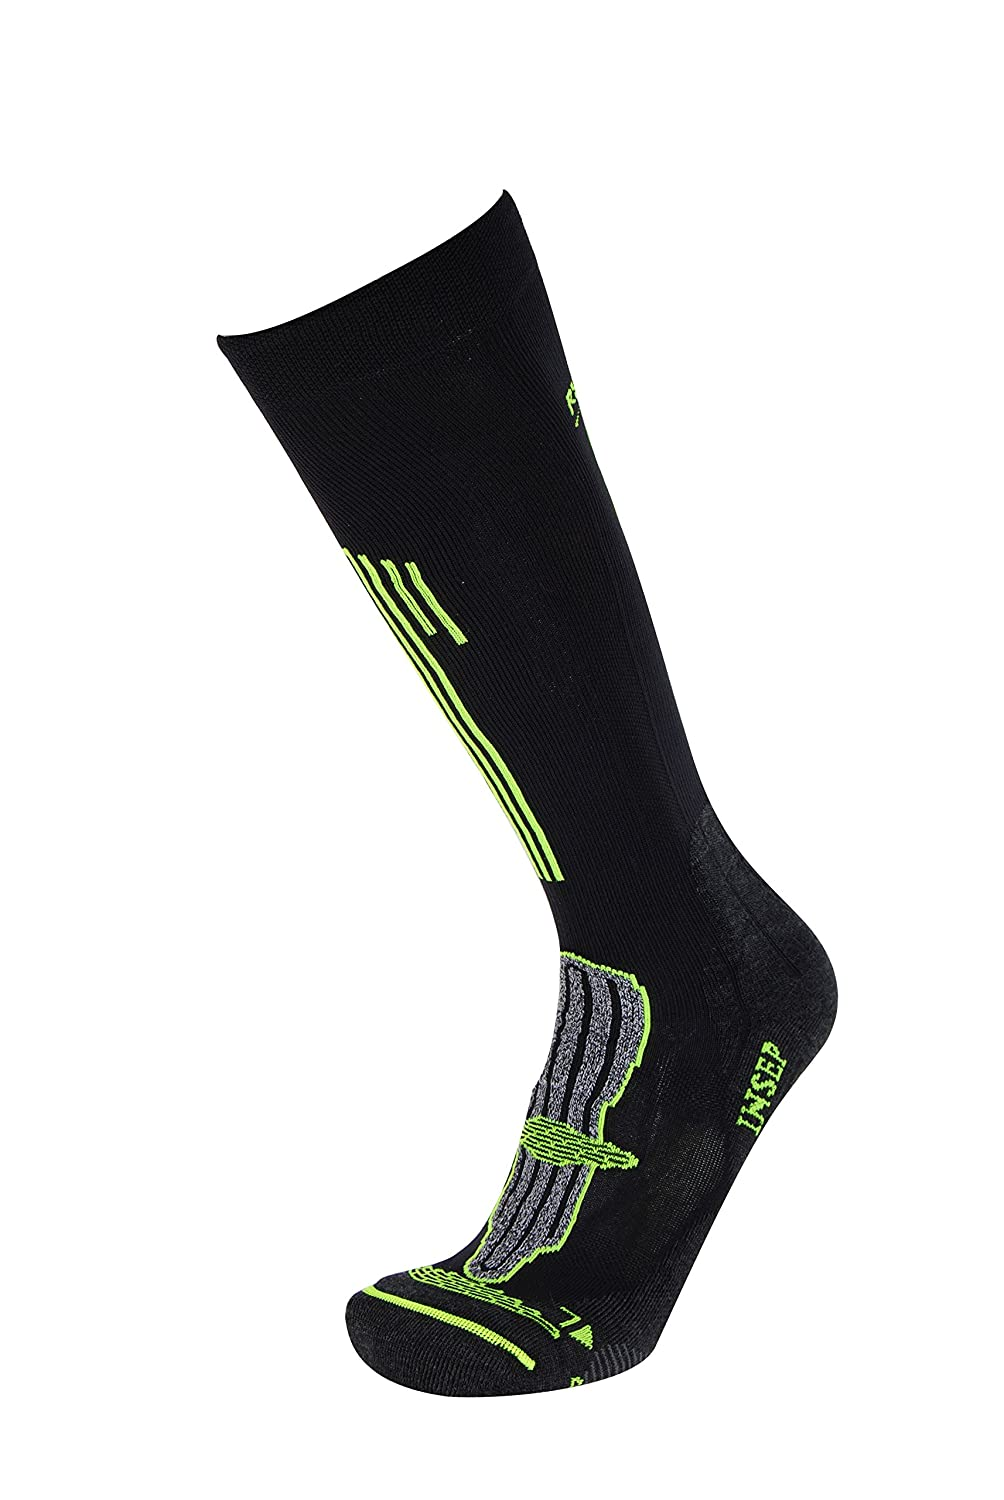 Rywan Discovery Chaussettes Mixte Adulte